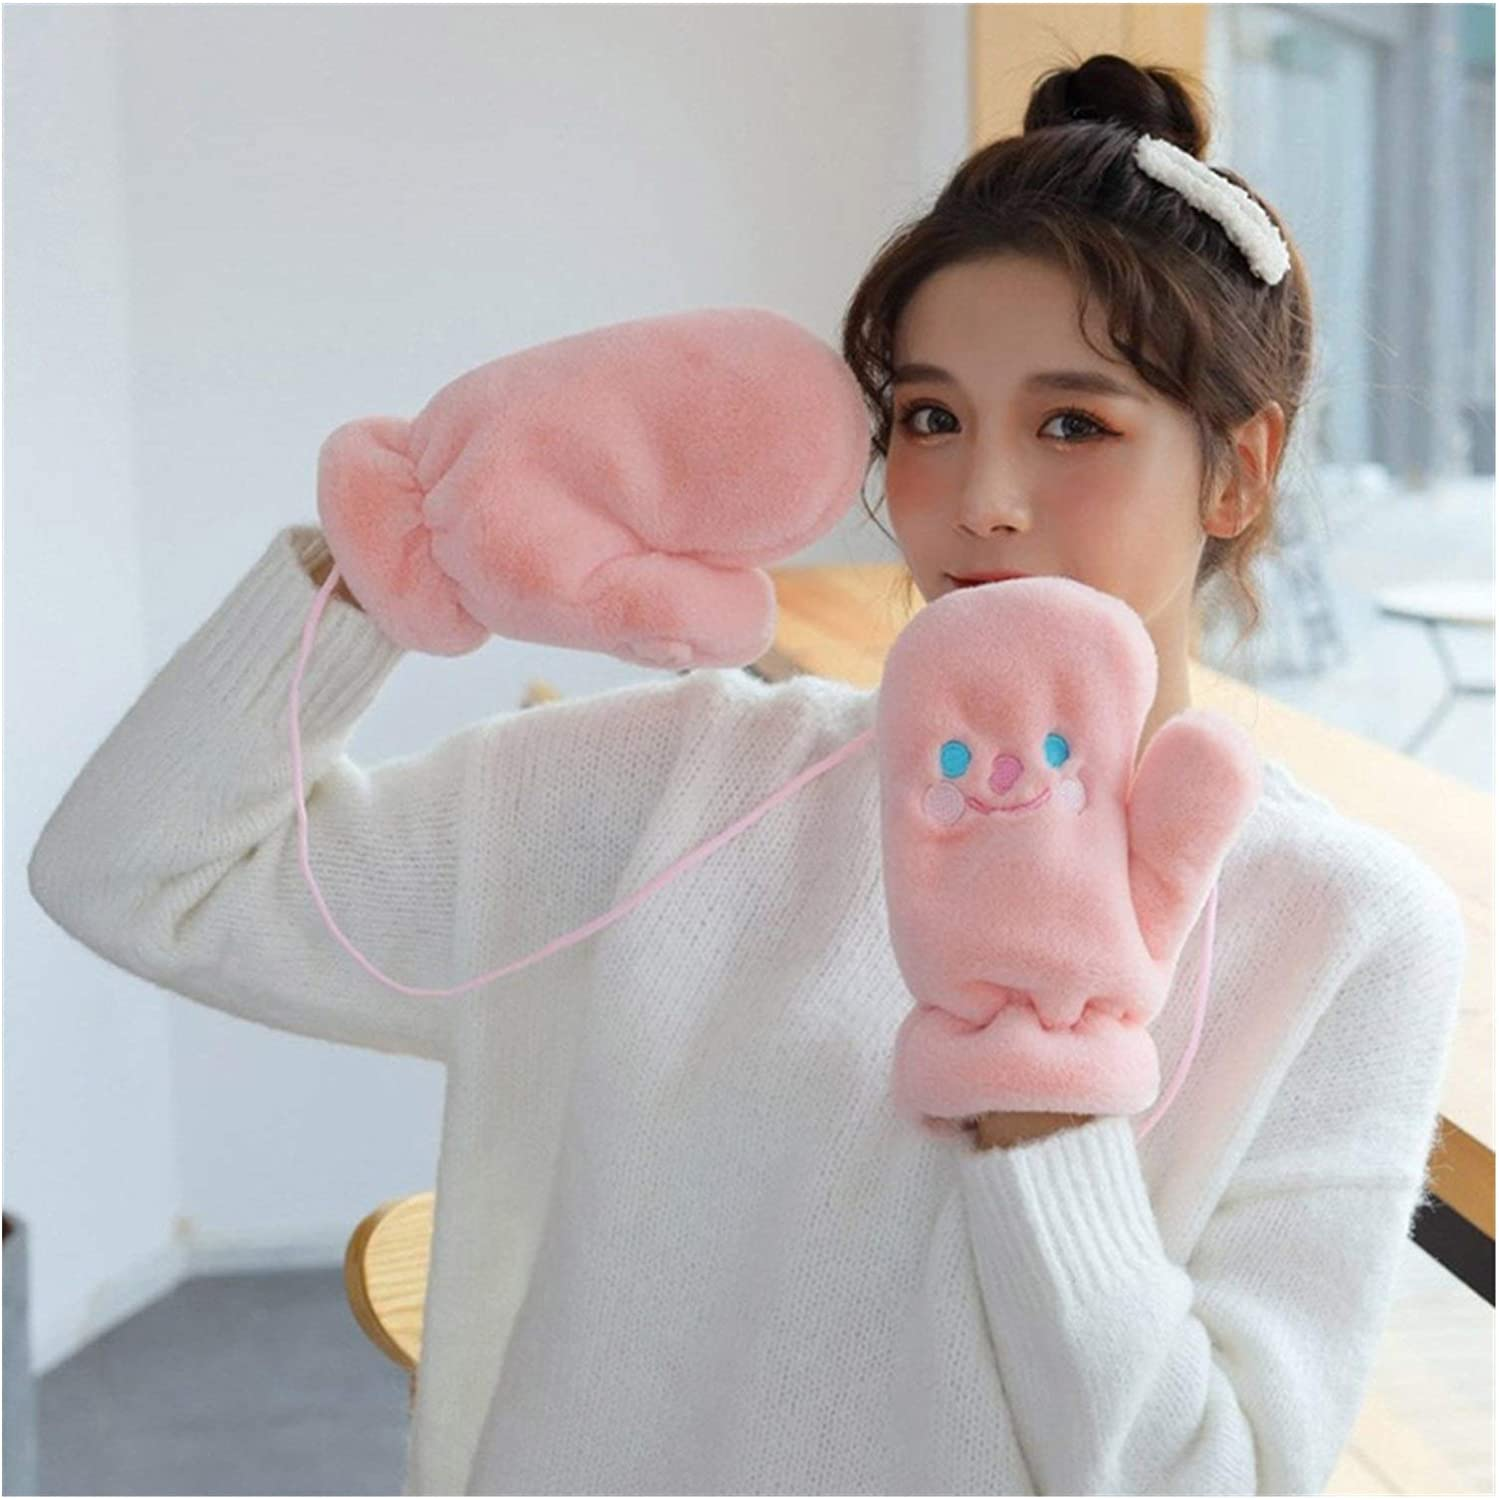 JBIVWW Women Winter Thick Plush Knit Warm Halter Mittens Female Cute Embroidery Full Fingers Cycling Glove (Color : I49 Pink)